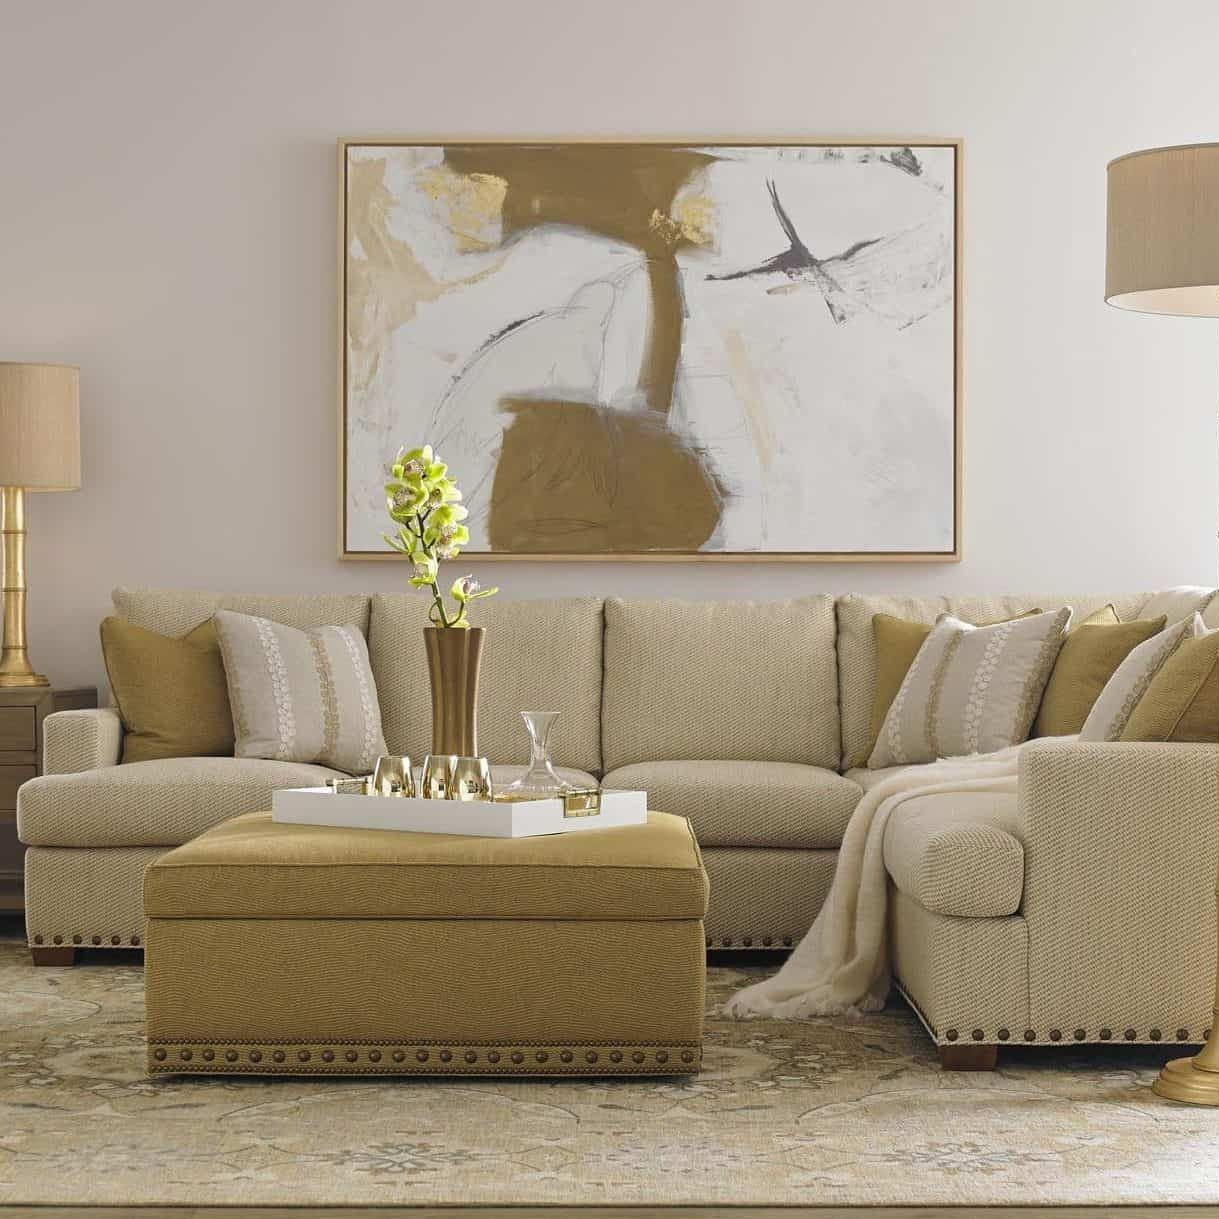 Fine Furniture & Interior Design